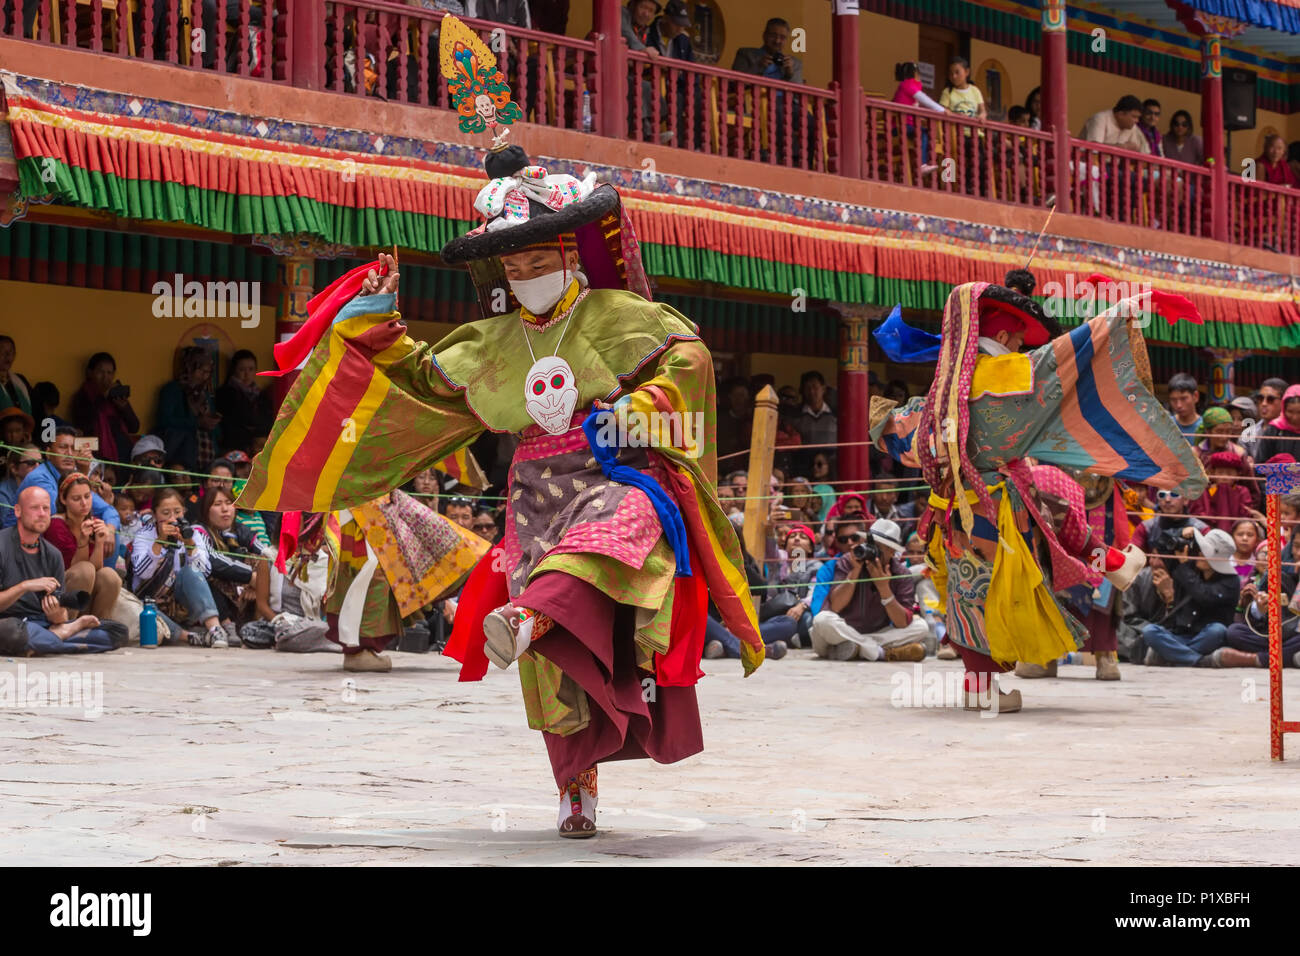 Leh, India - June 21, 2017: Unidentified monks in mask performing a religious masked and costumed mystery dance of Tibetan Buddhism during the Buddhis - Stock Image